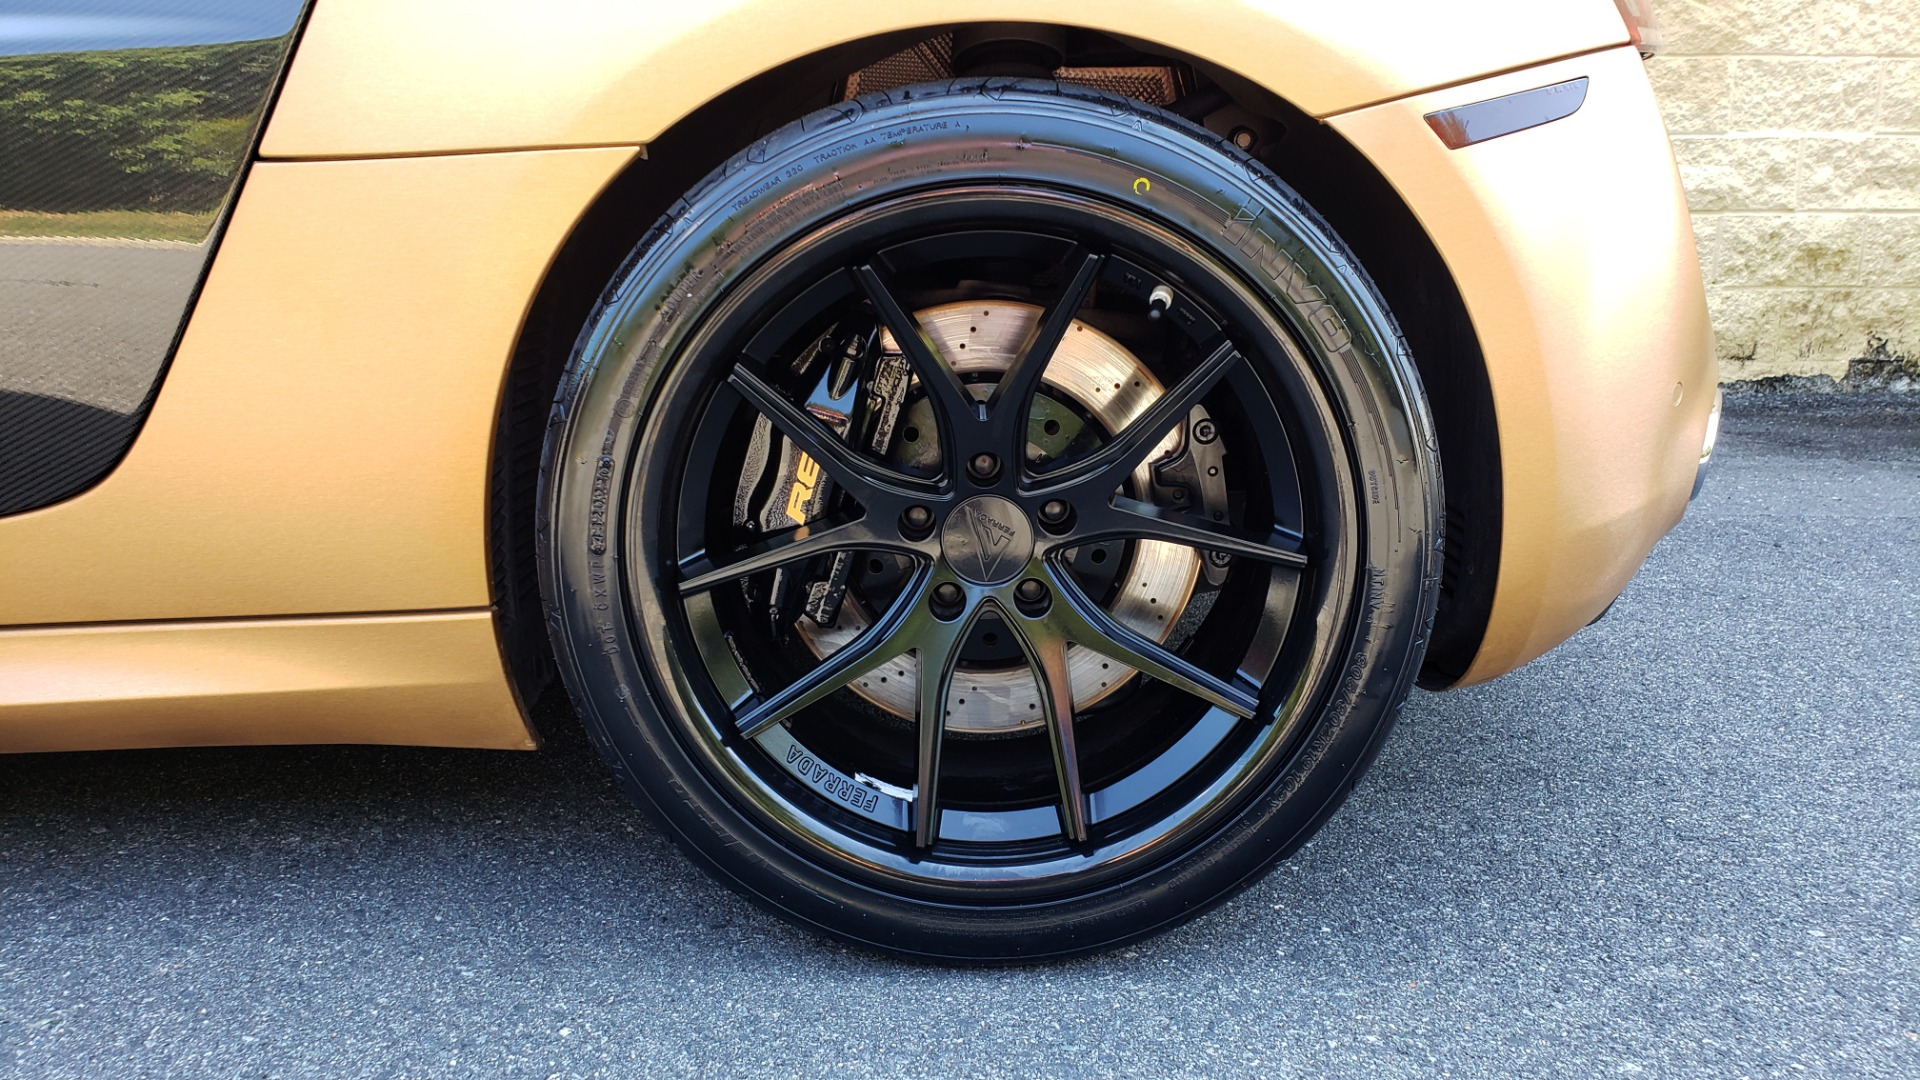 Used 2012 Audi R8 V10 5.2L / CUST WRAP BRUSHED BRONZE / NAV / B&O SOUND / CUST 19IN WHLS for sale $79,999 at Formula Imports in Charlotte NC 28227 72